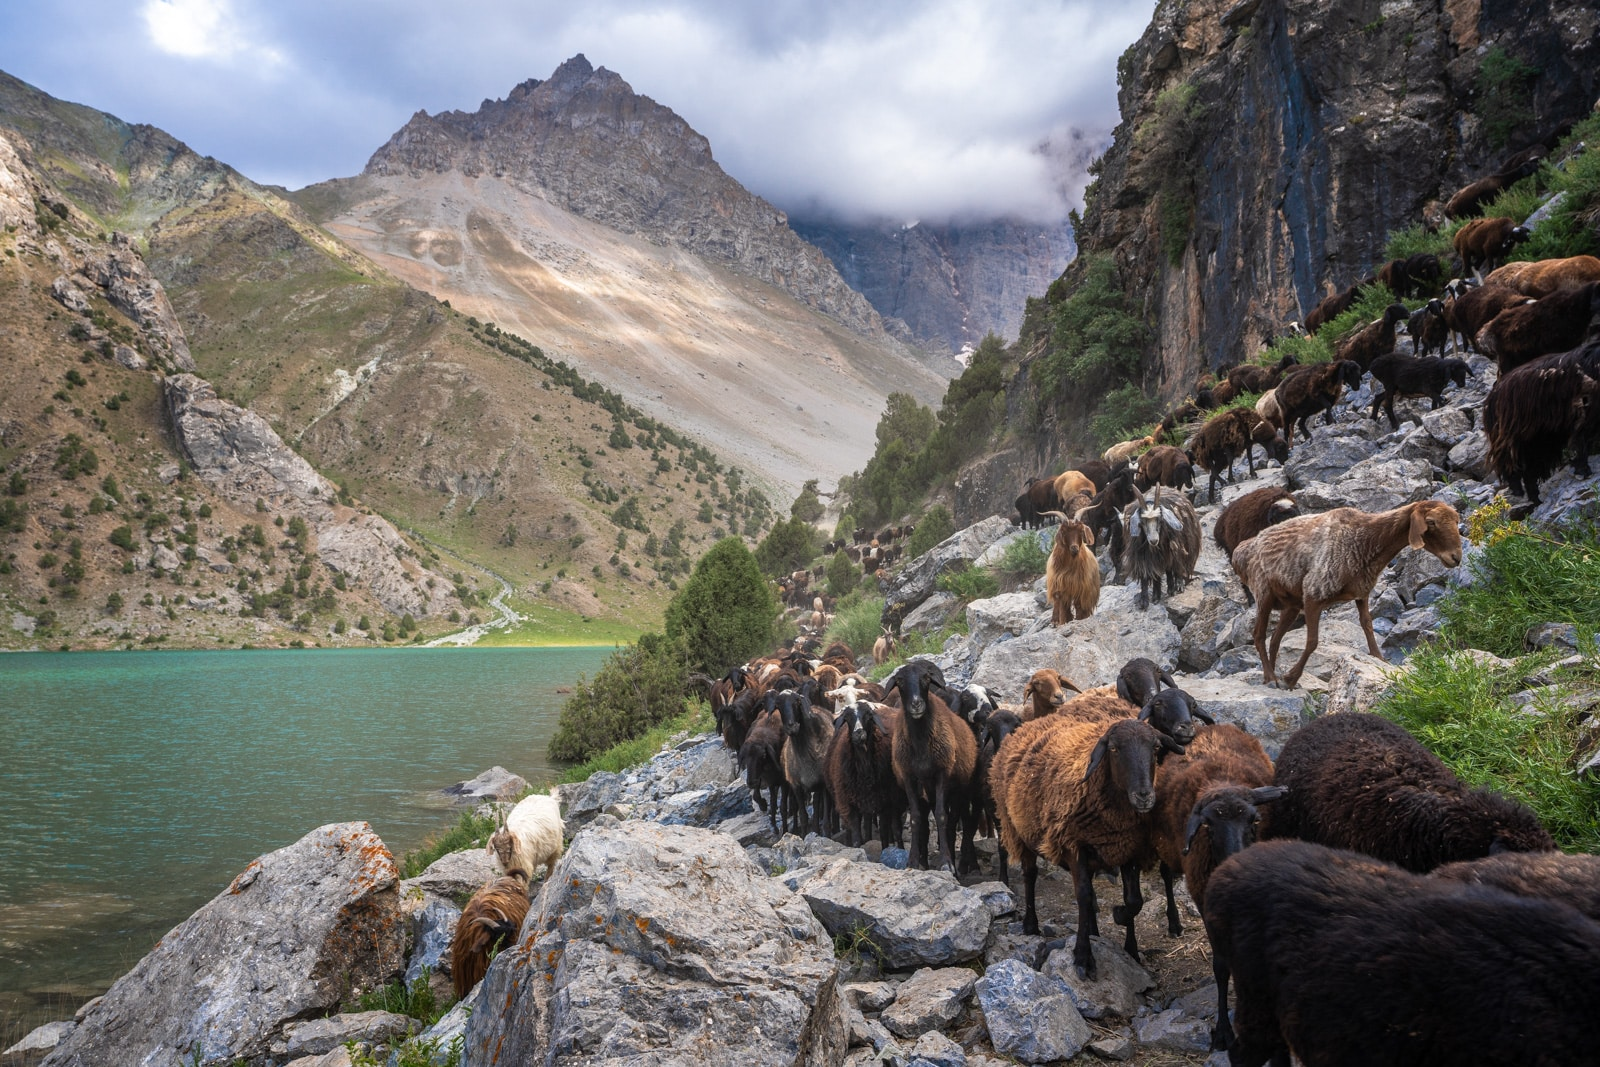 Herd of sheep and goats walking in Tajikistan's Fann Mountains